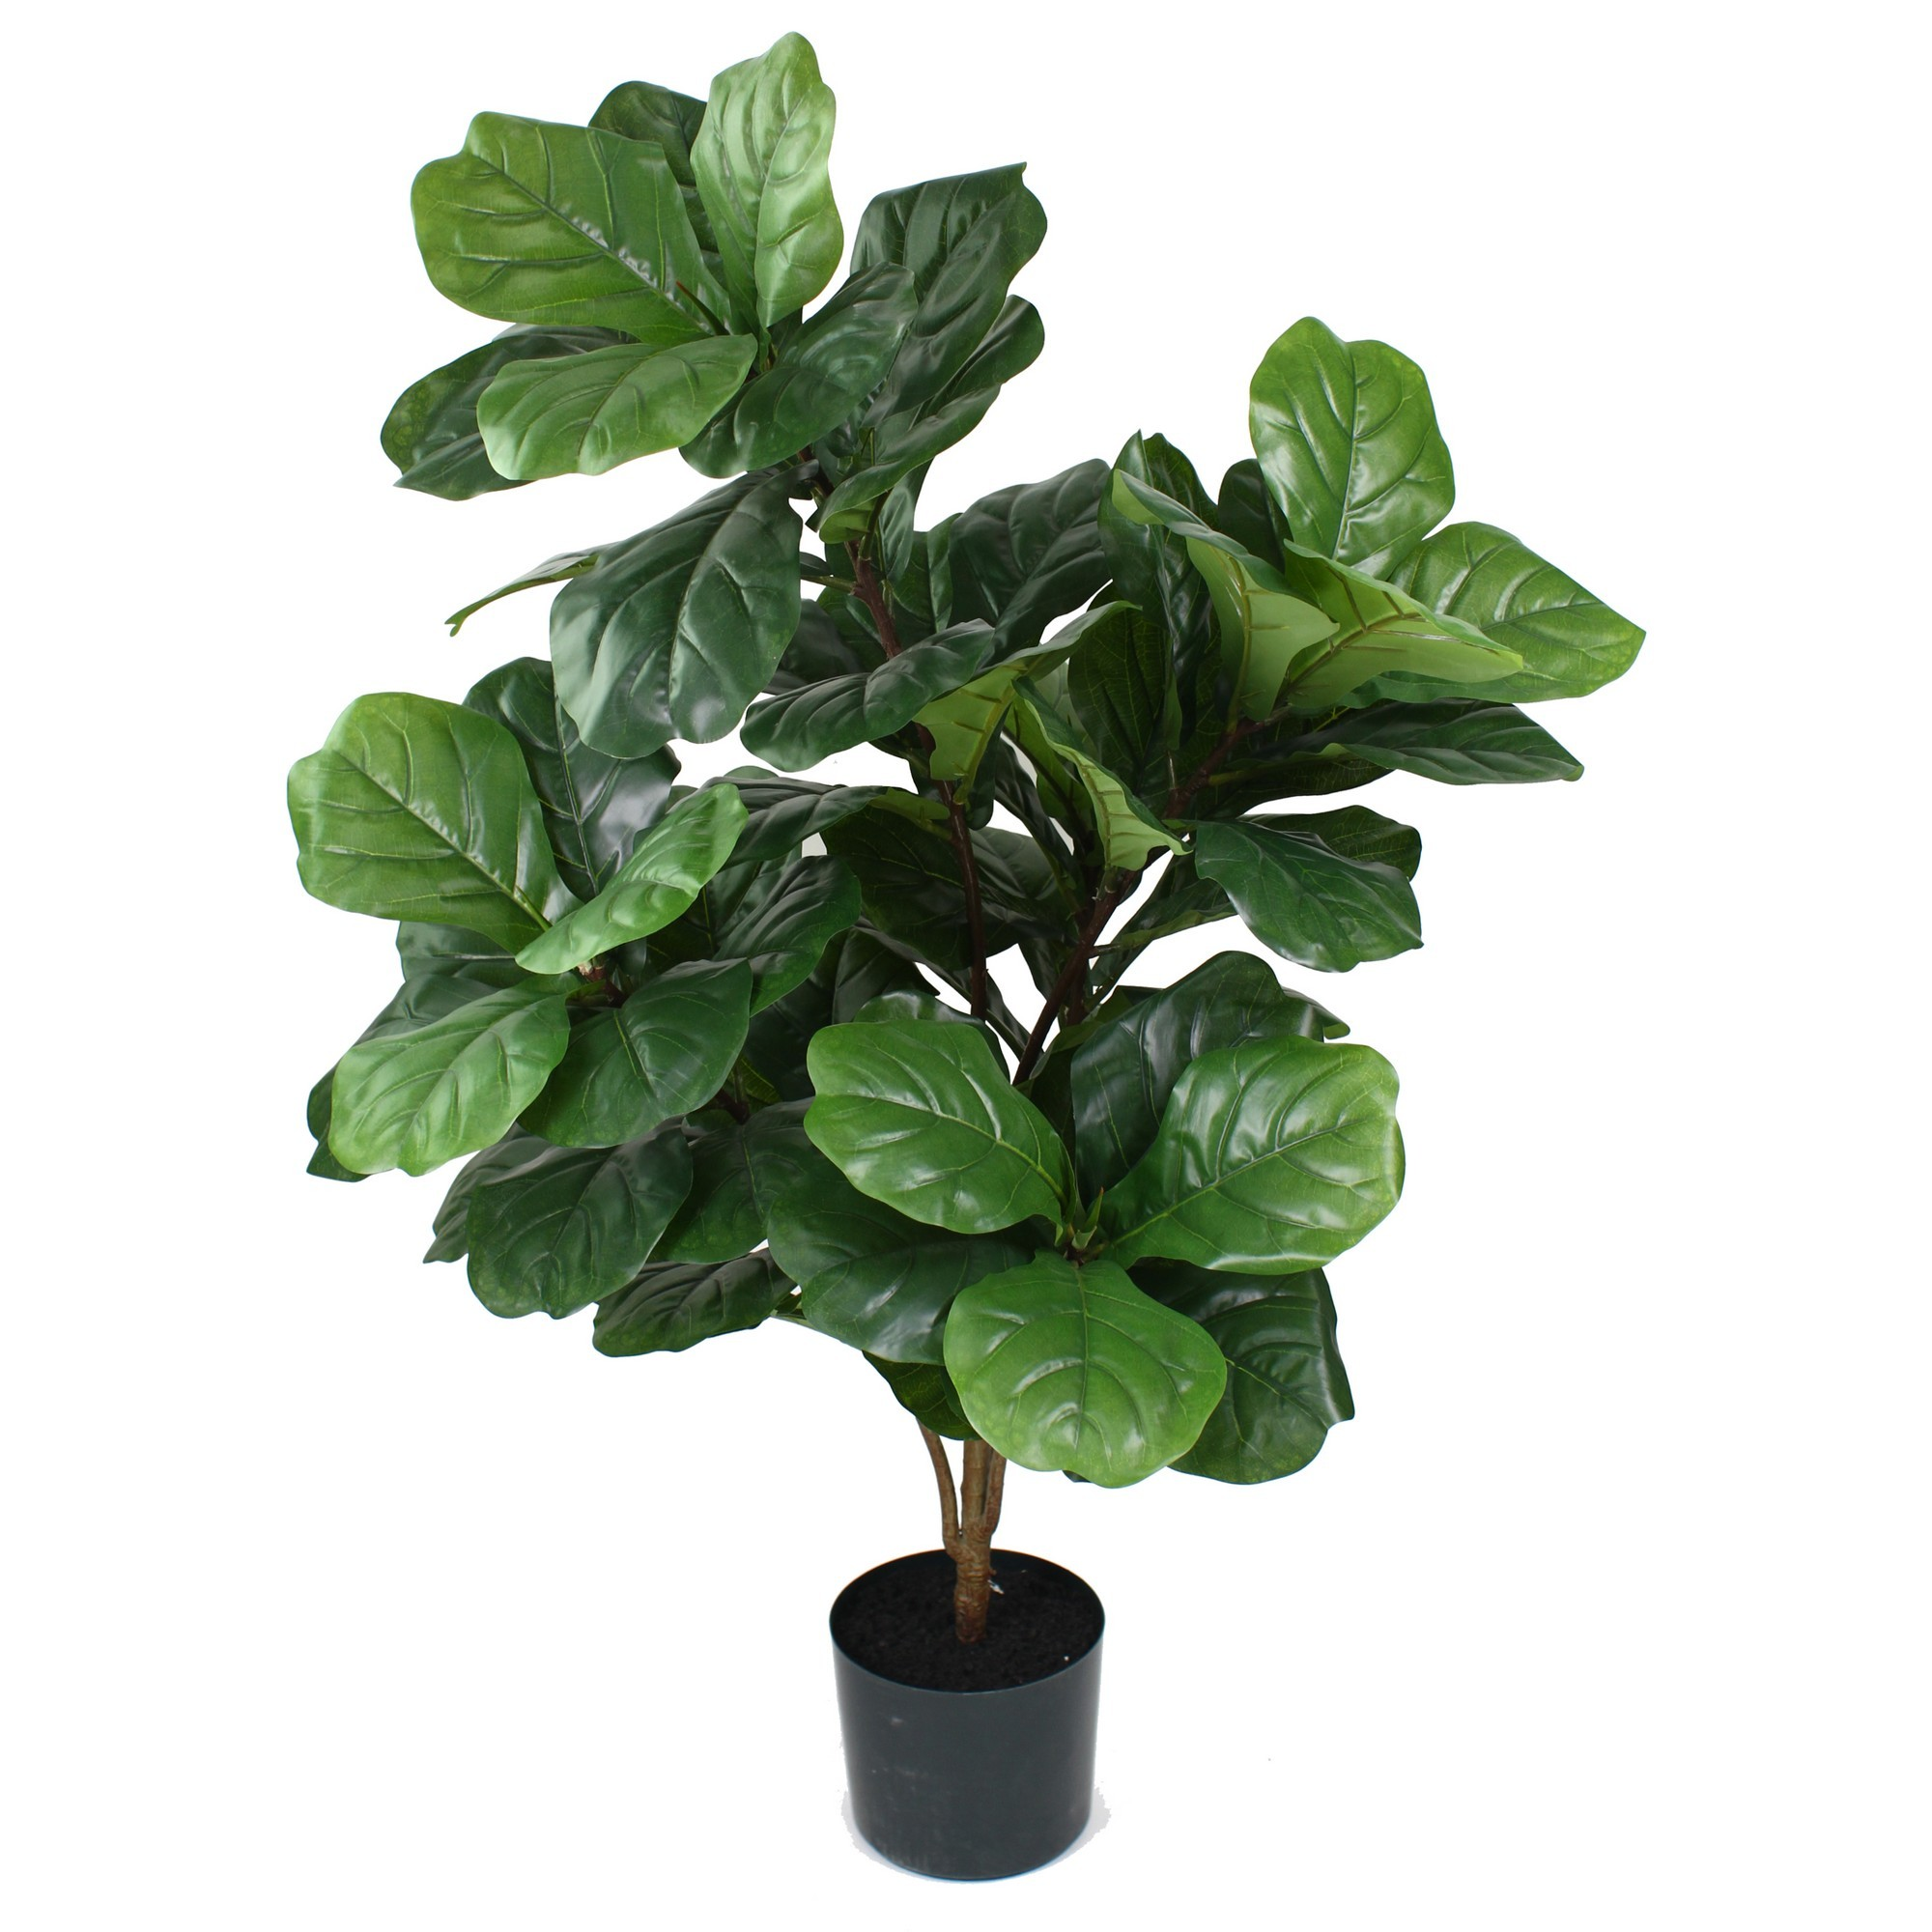 Glamorous Fusion Potted Artificial Fiddle Leaf Fig Tree, 140cm